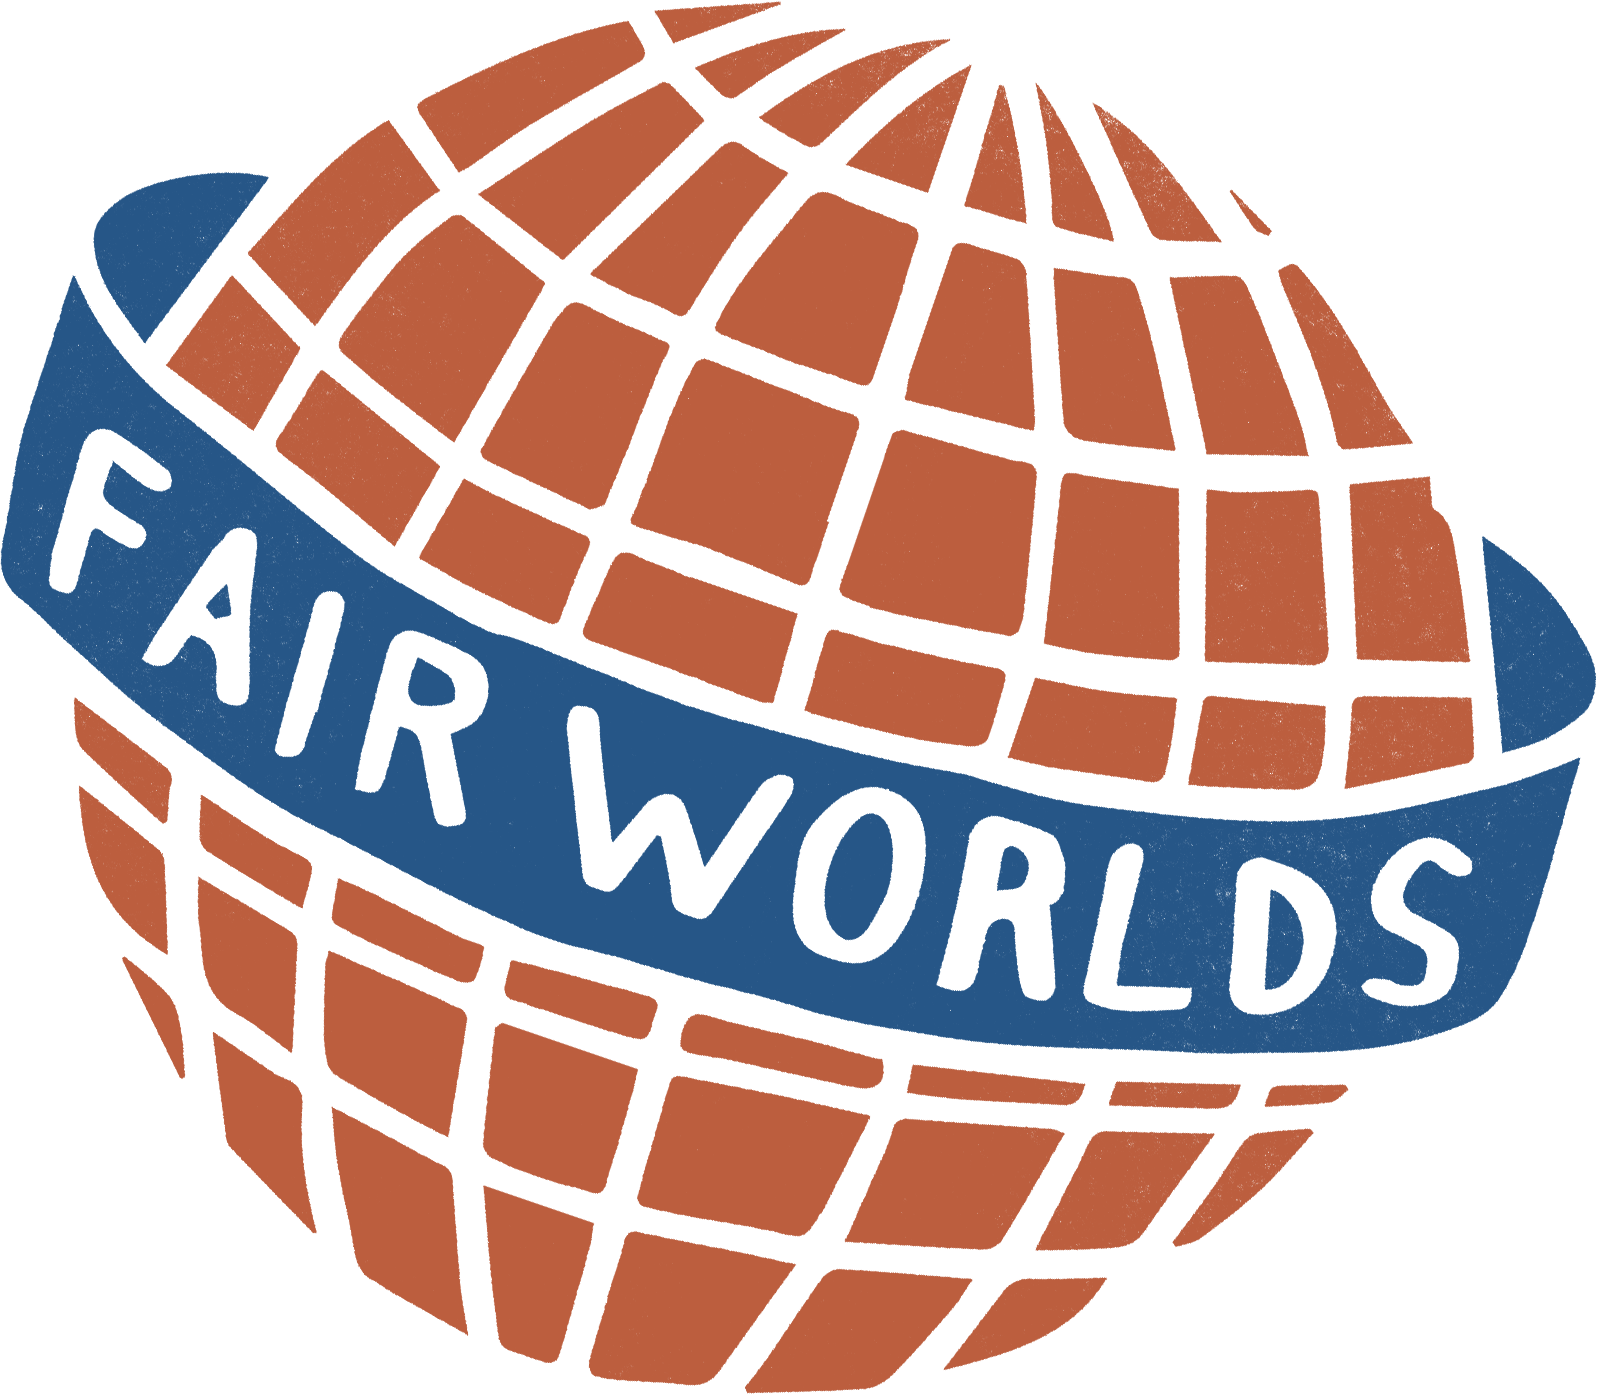 FairWorlds logo image. The logo looks like a orange globe with a blue banner wrapped around it that has the company name on it.